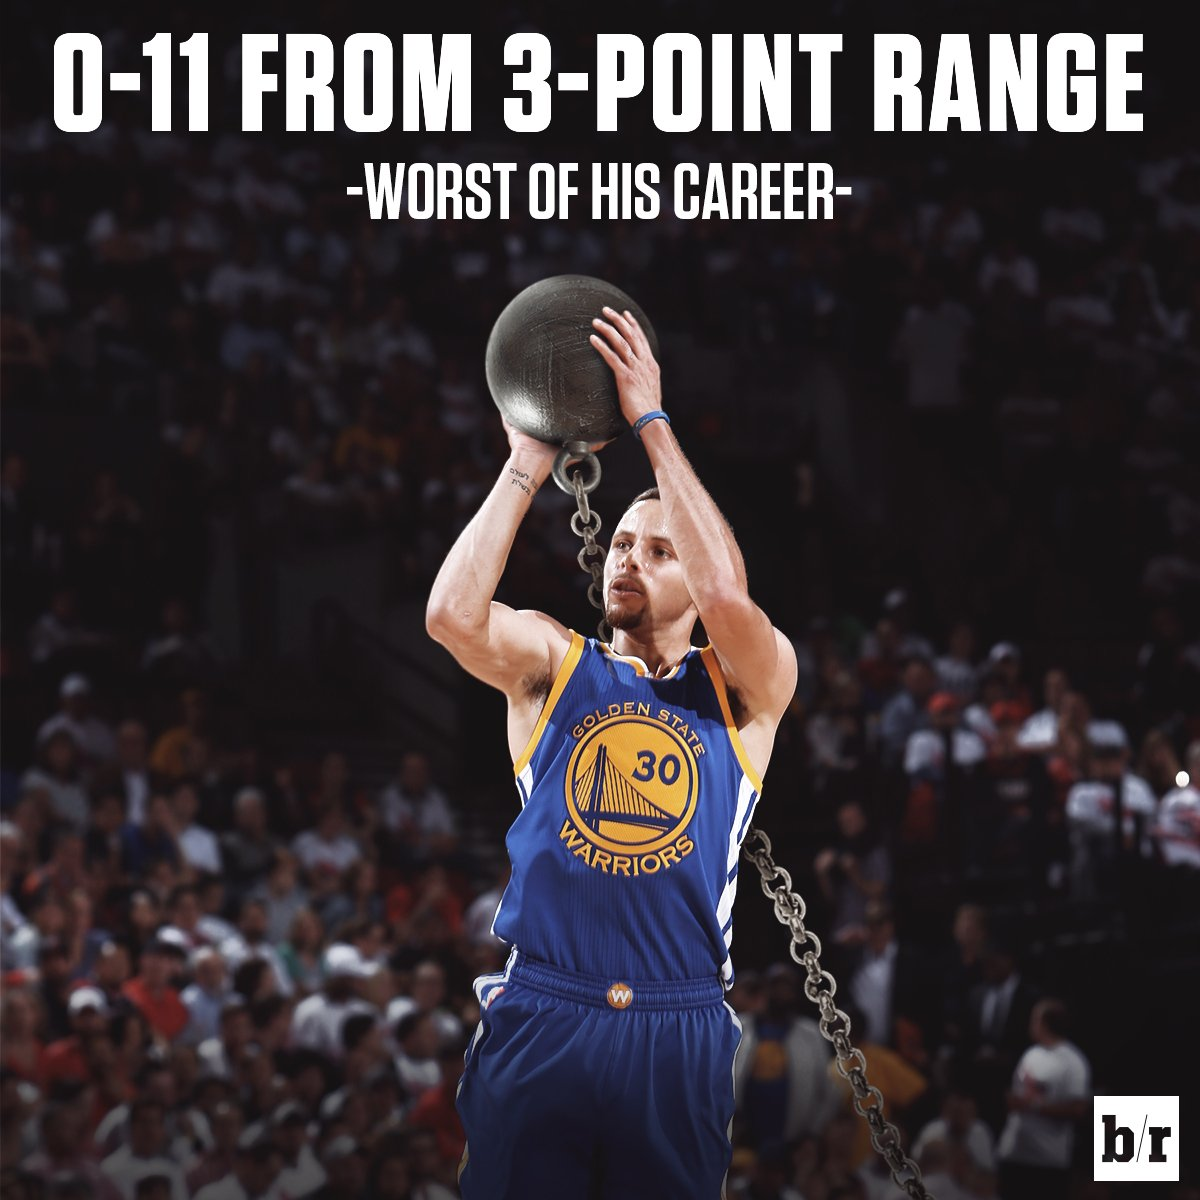 Steph was weighed down from 3 tonight. https://t.co/rOn5Byd4TX